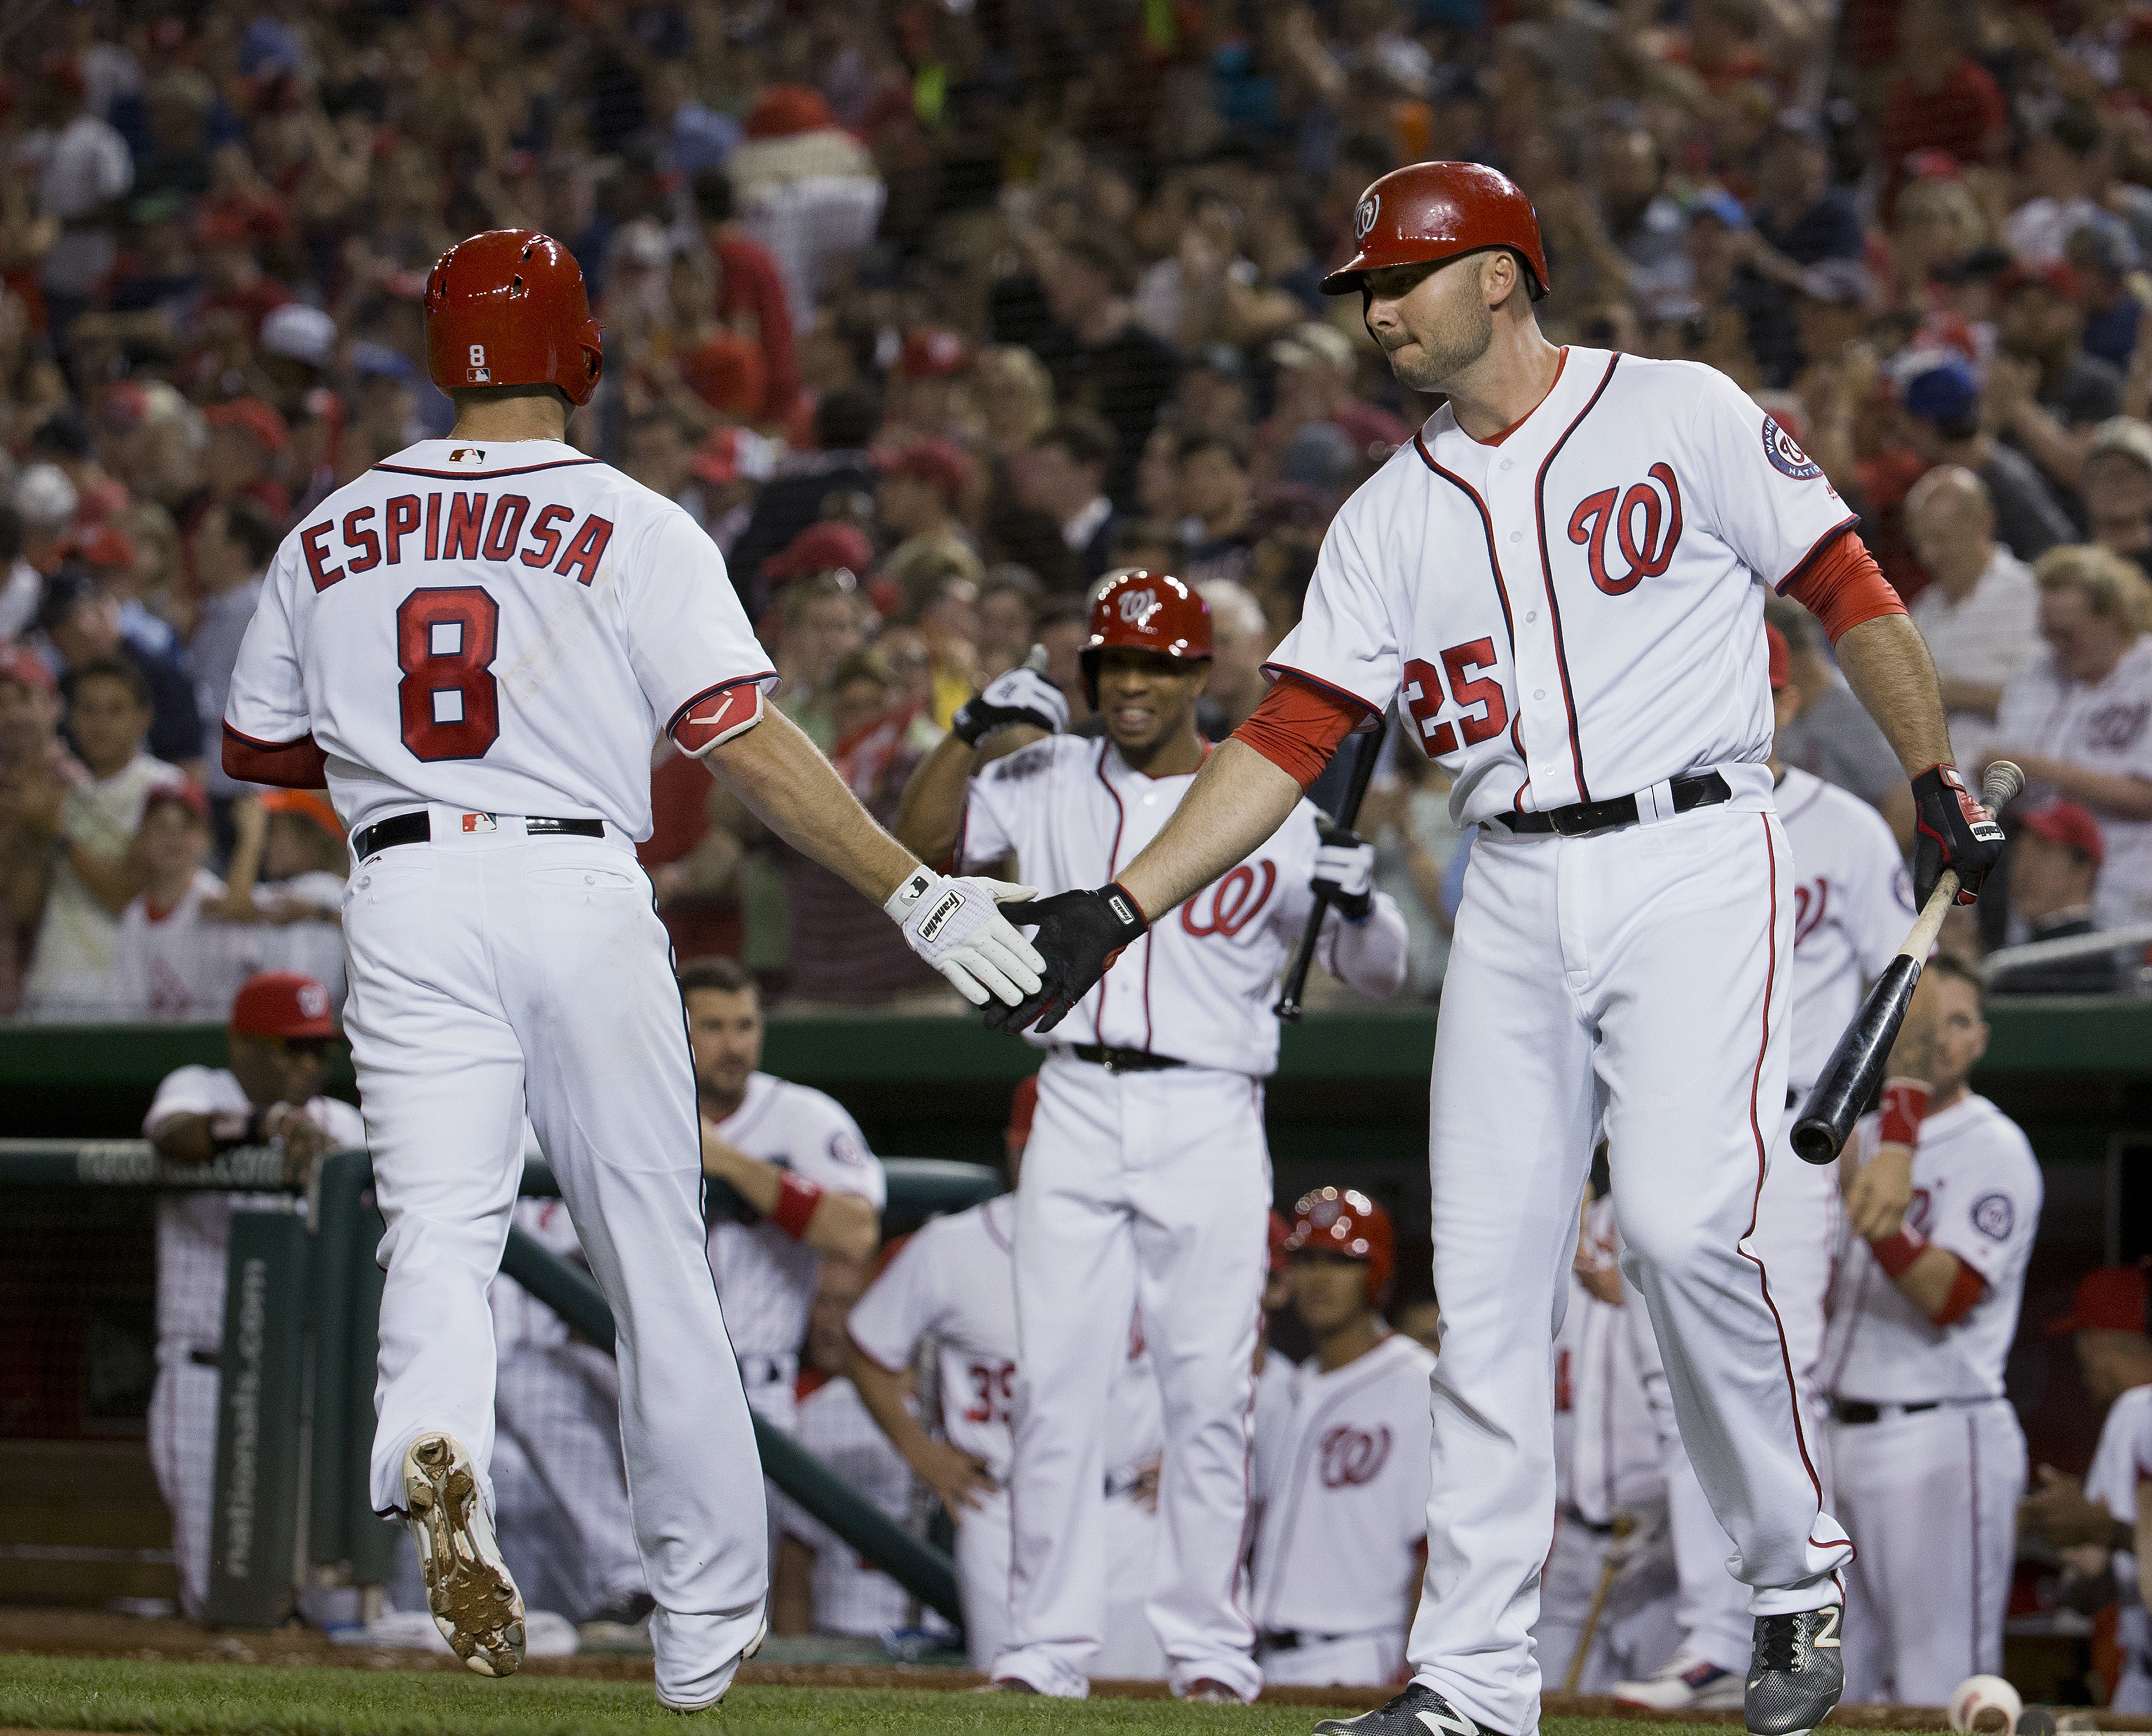 Washington Nationals' Danny Espinosa (8) is greeted by Clint Robinson (25) after hitting a solo home run off St. Louis Cardinals starting pitcher Mike Leake during the seventh inning of a baseball game at Nationals Park, Thursday, May 26, 2016, in Washing